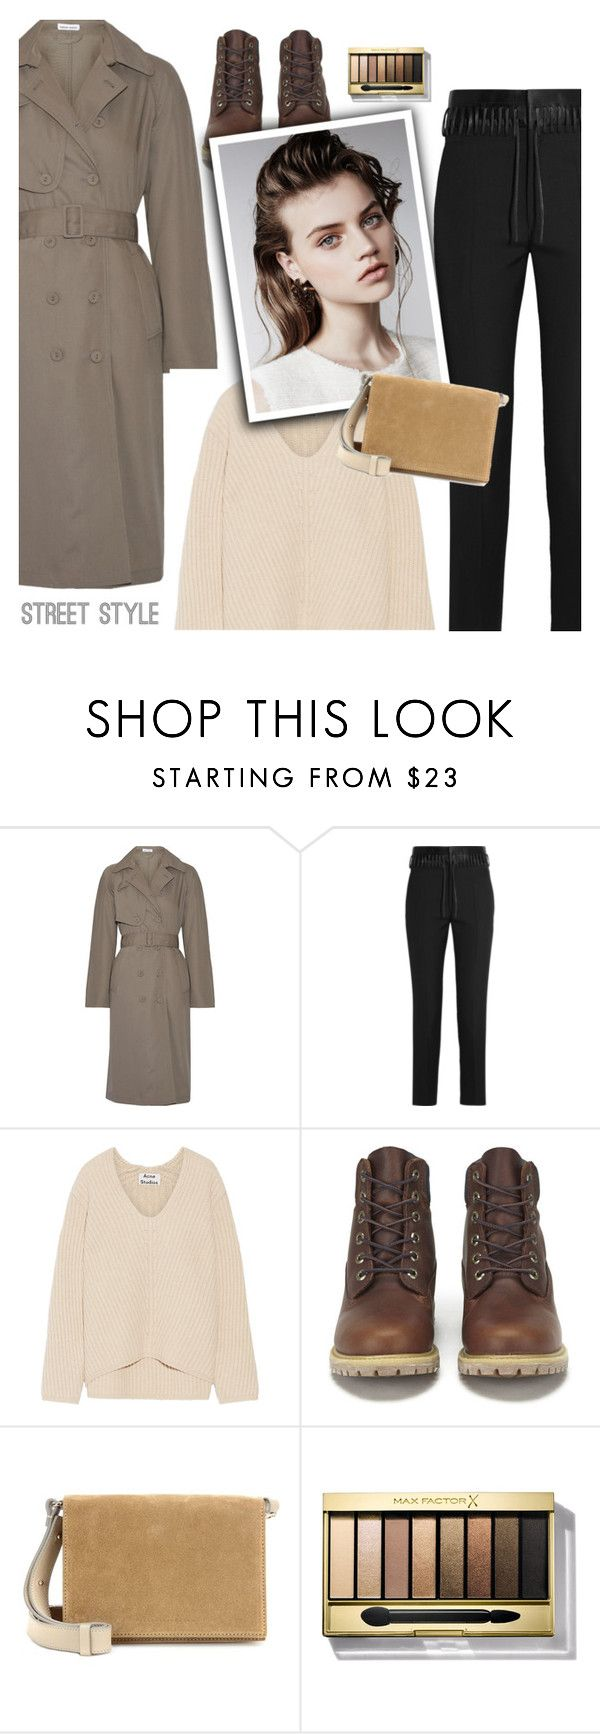 """""""16.01.2017"""" by bliznec-anna ❤ liked on Polyvore featuring Tomas Maier, Haider Ackermann, Acne Studios, Timberland, Victoria Beckham, Max Factor and polyvorefashion"""